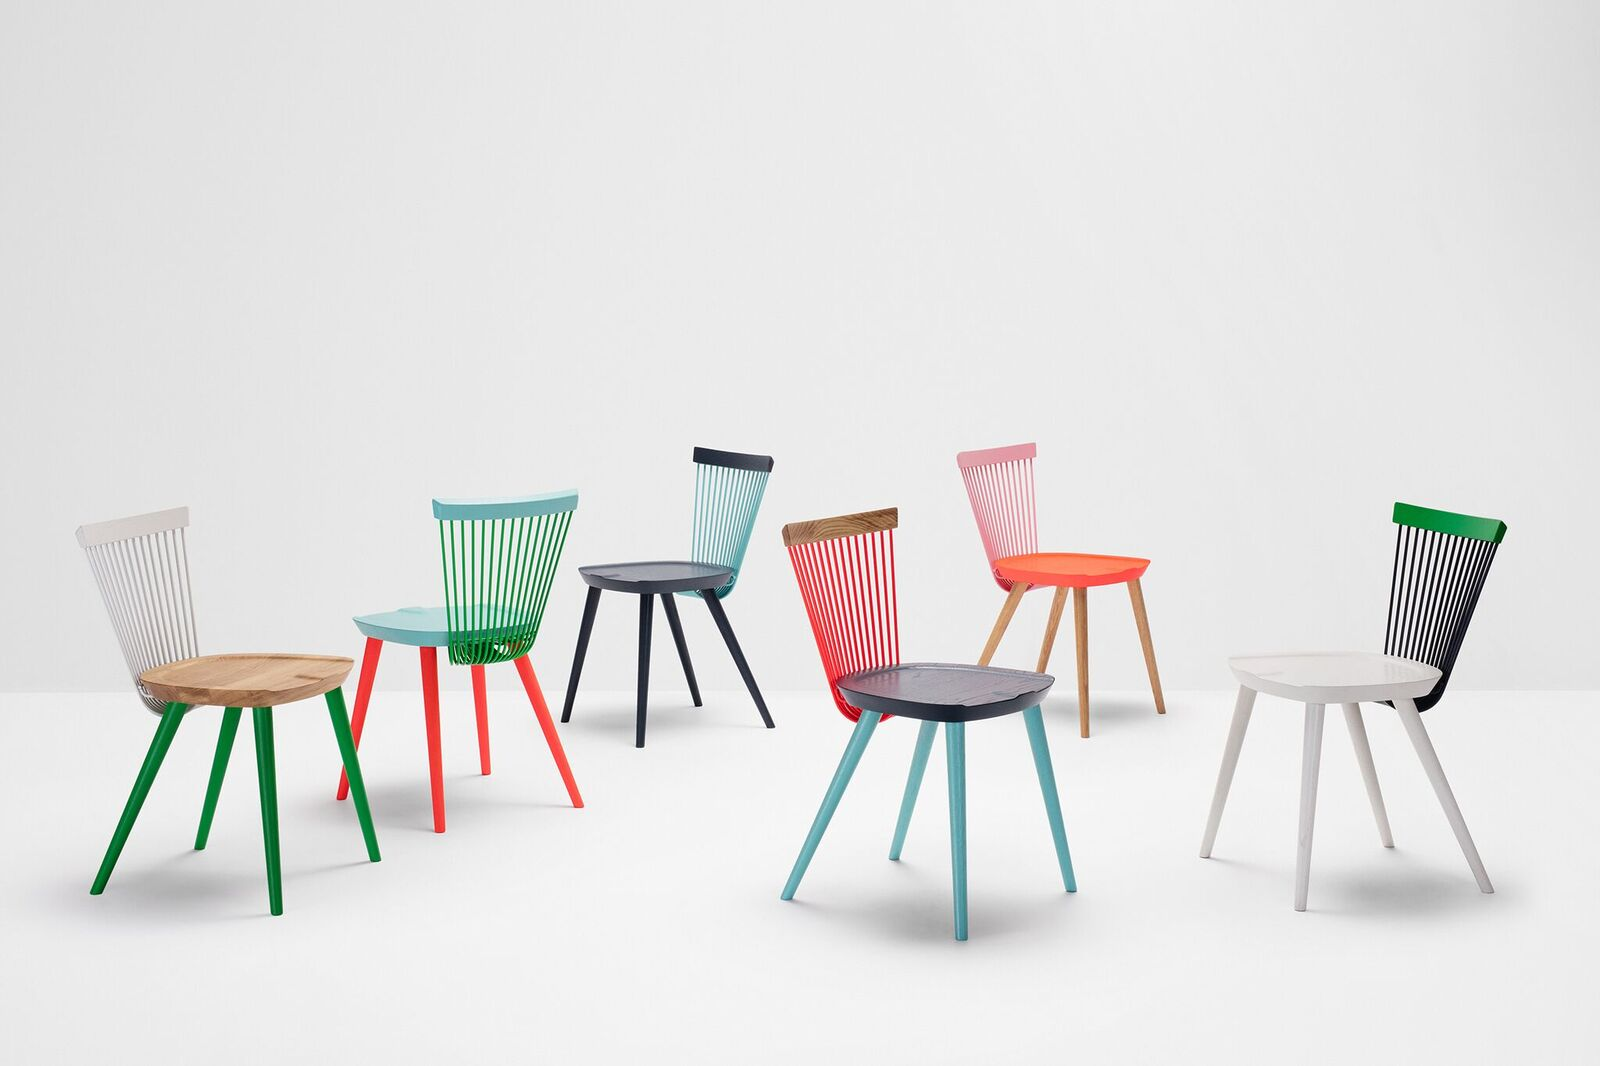 The 'WW' chair from H Furniture in it's limited edition colourful incarnations